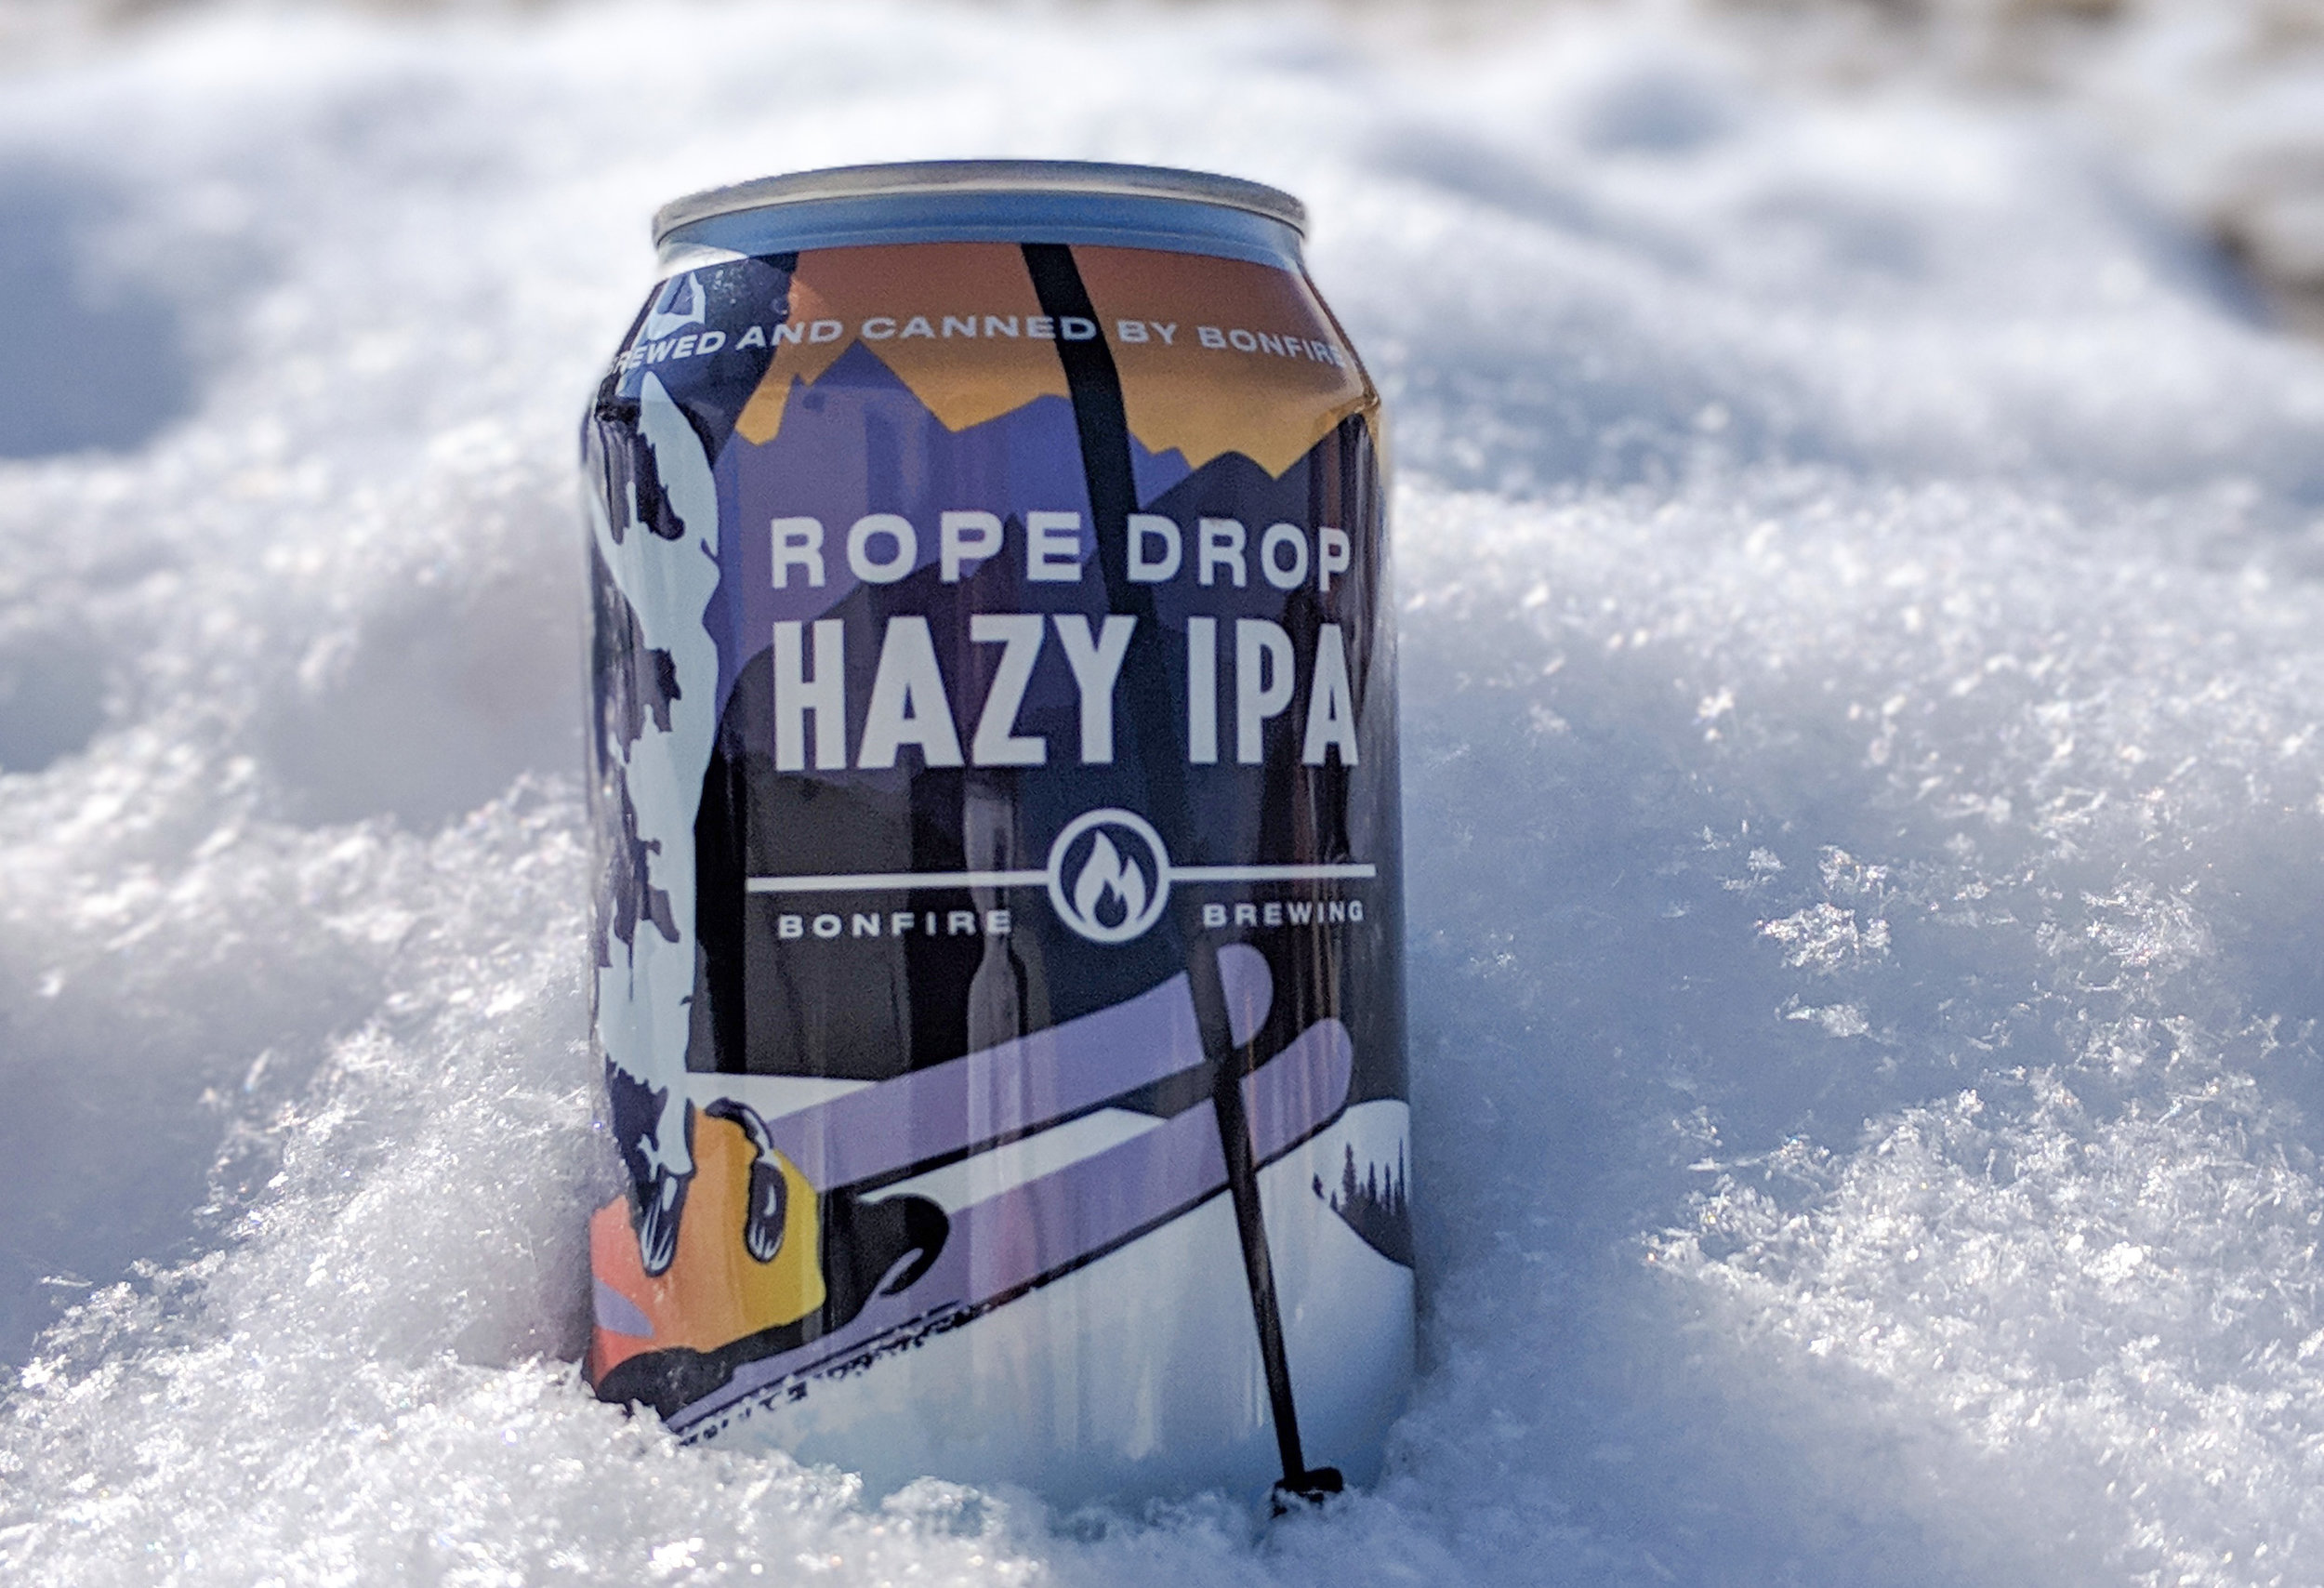 Rope-Drop-Hazy-IPA_snow2.jpg